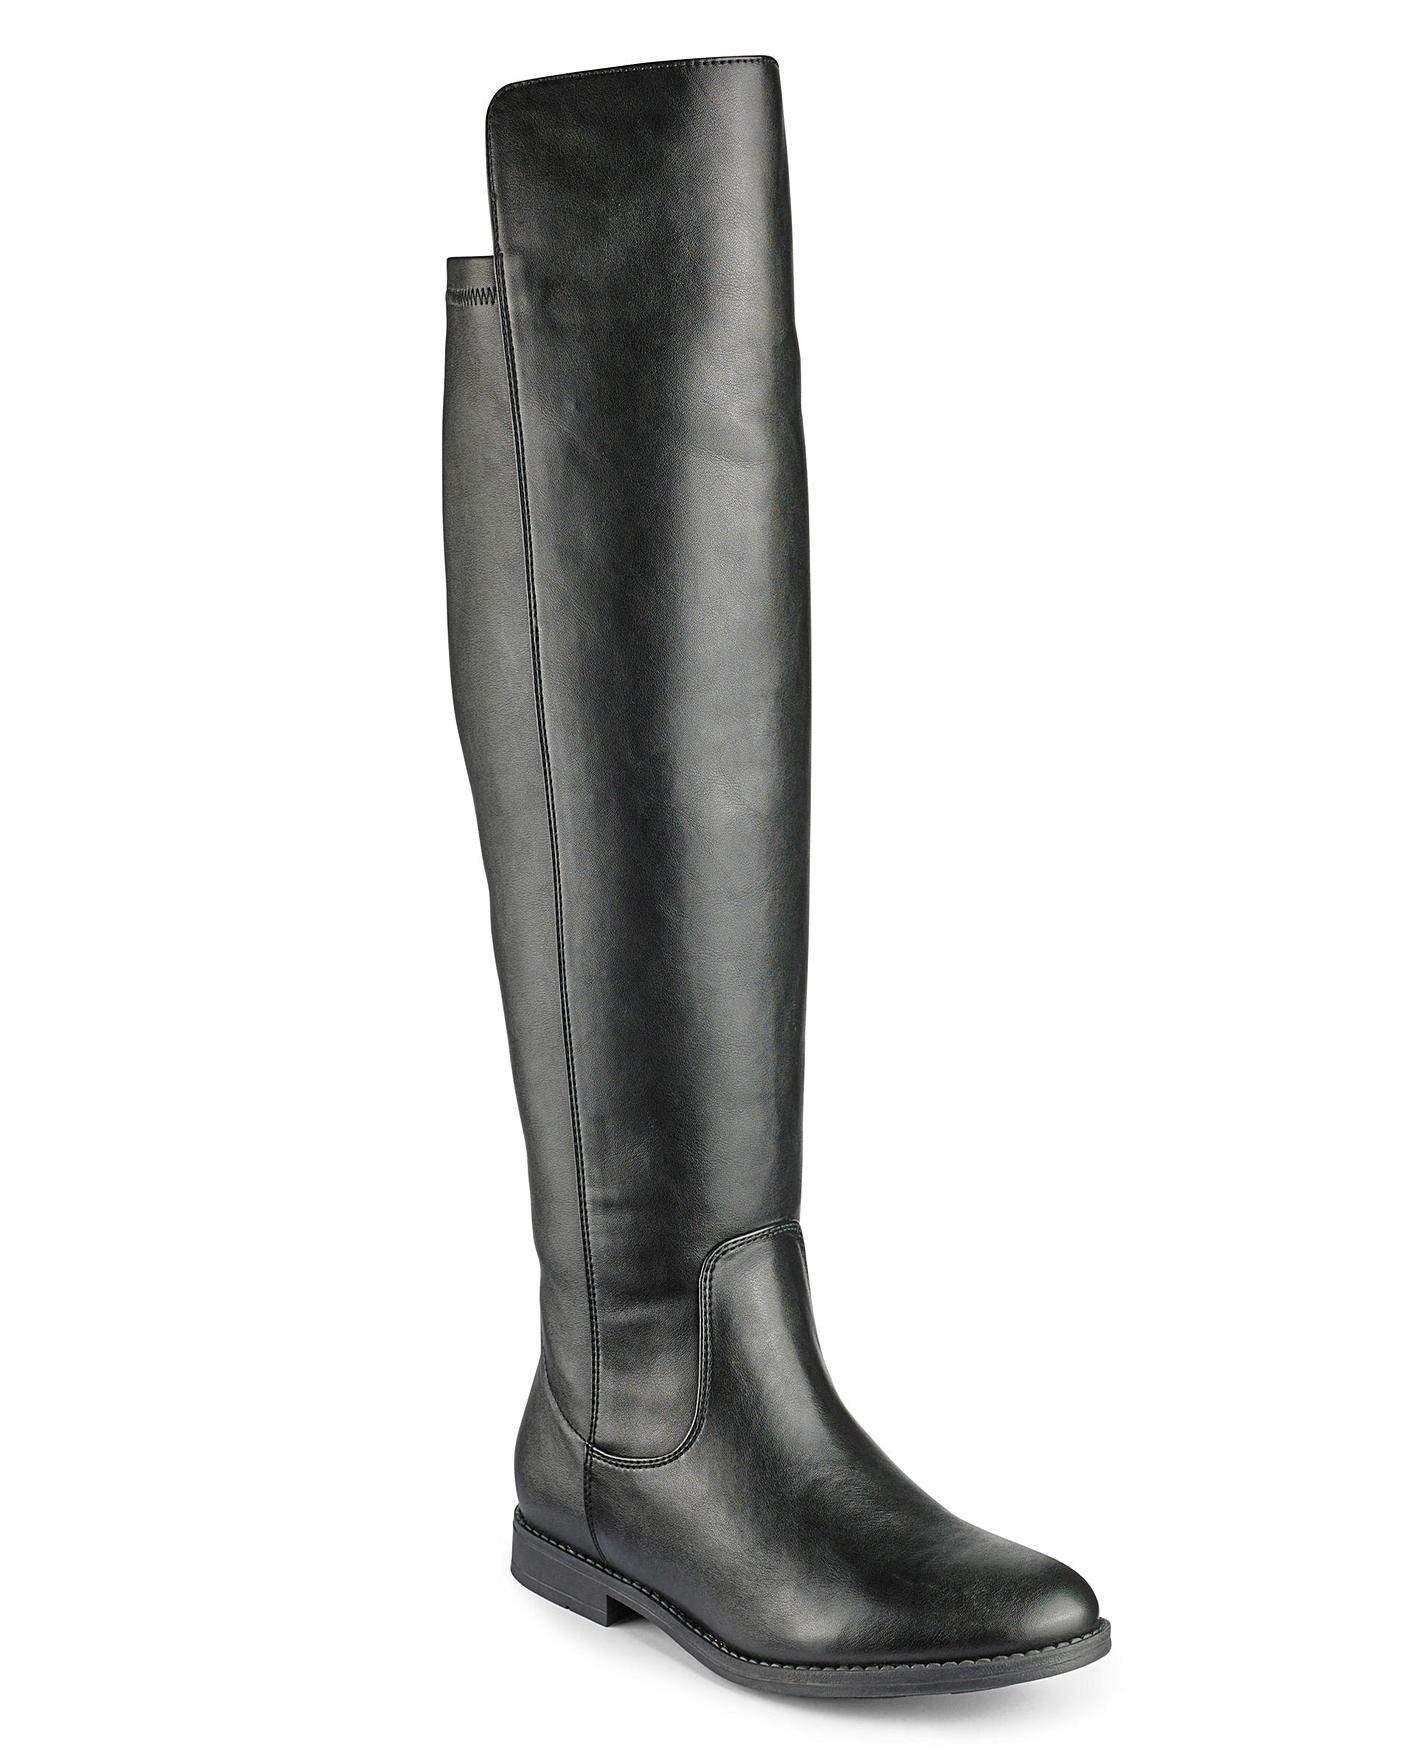 c1ade1044ed Sole Diva Over The Knee Standard Calf Boots Extra Wide EEE Fit